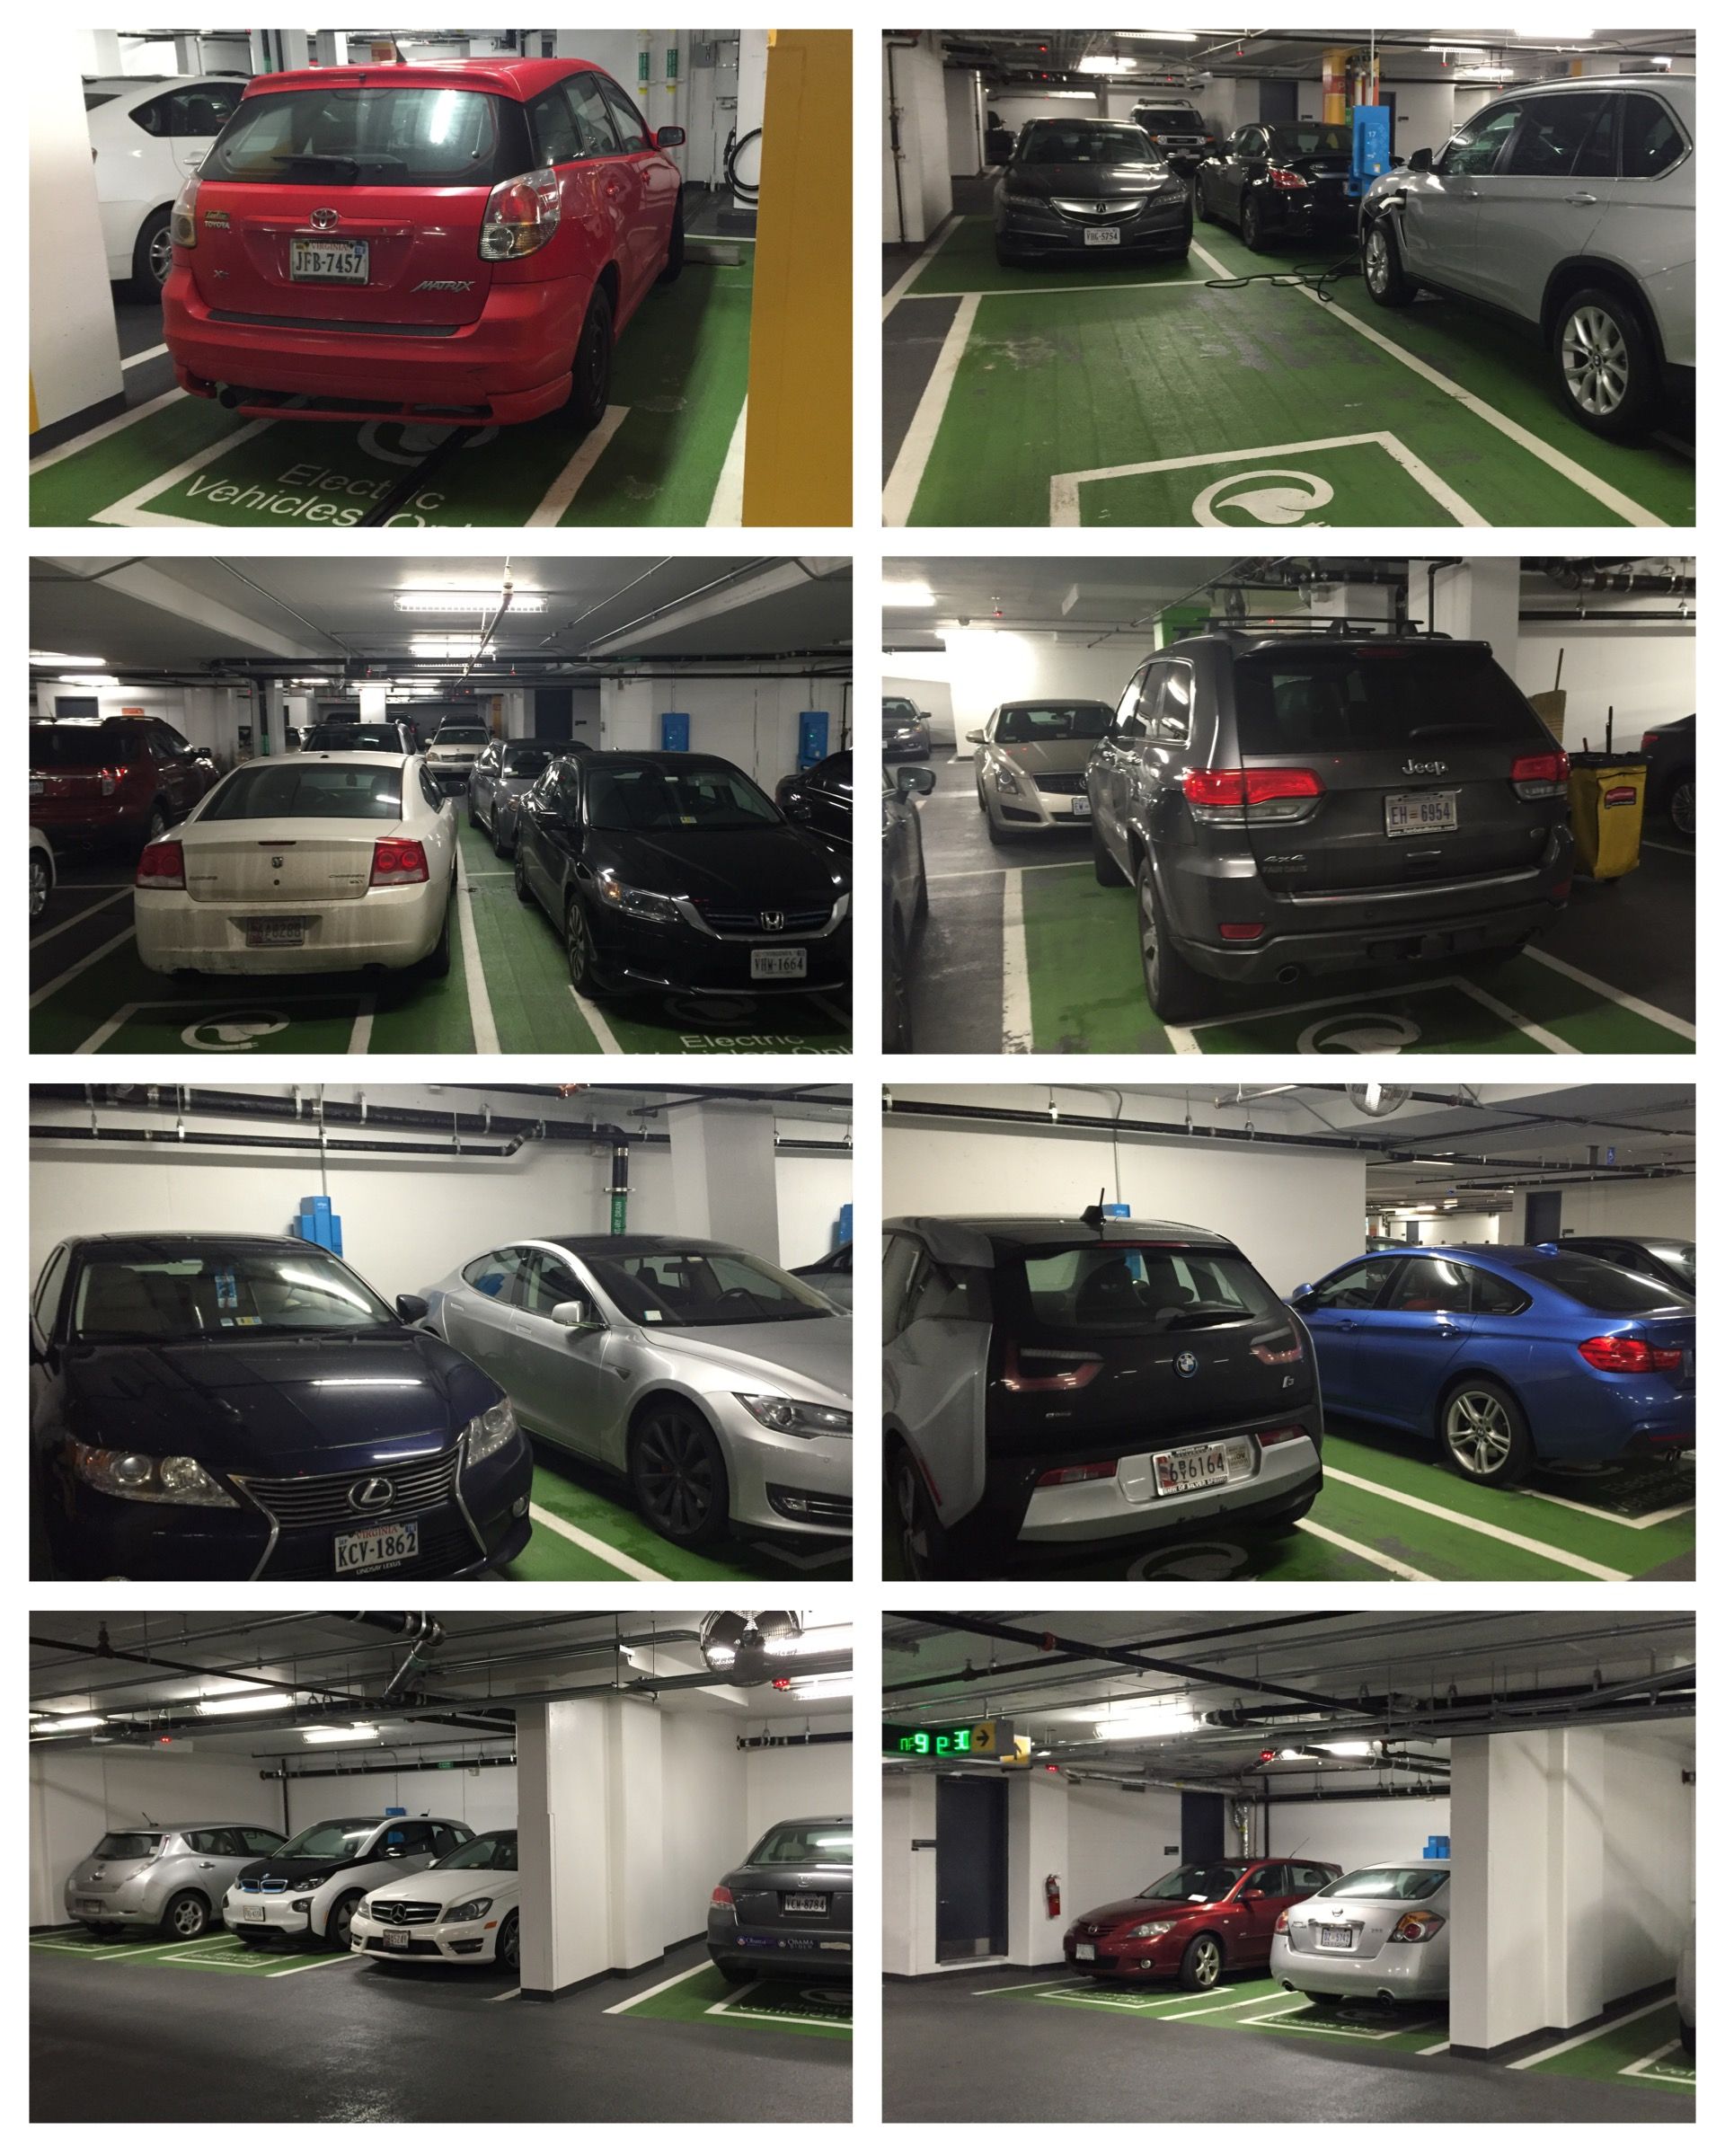 Just a random Saturday in Washington, DC. Fourteen of the 18 public chargers at this garage were ICE'd out. Not cool.